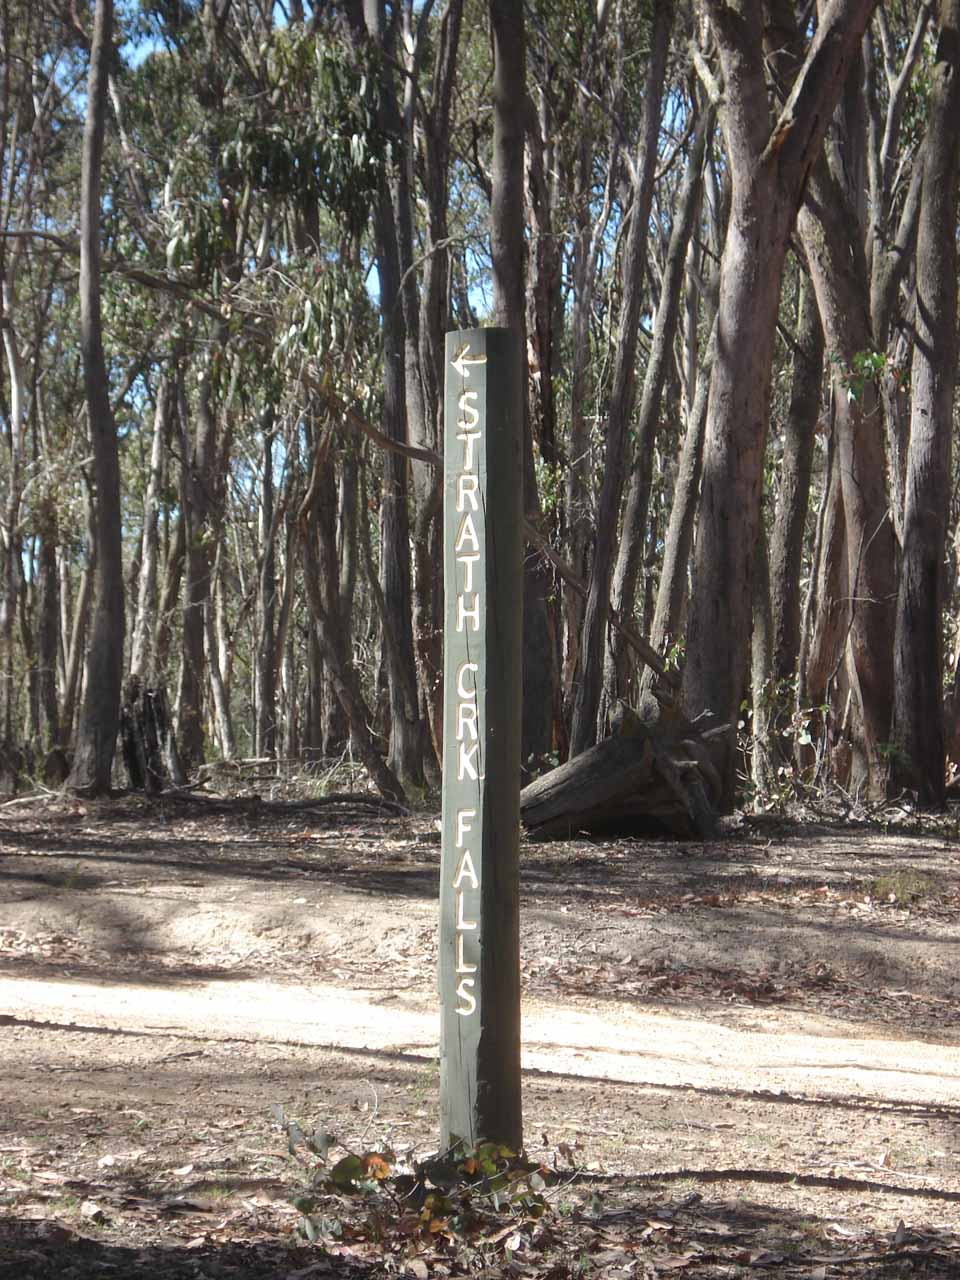 A sign pointing the way towards Strath Creek Falls